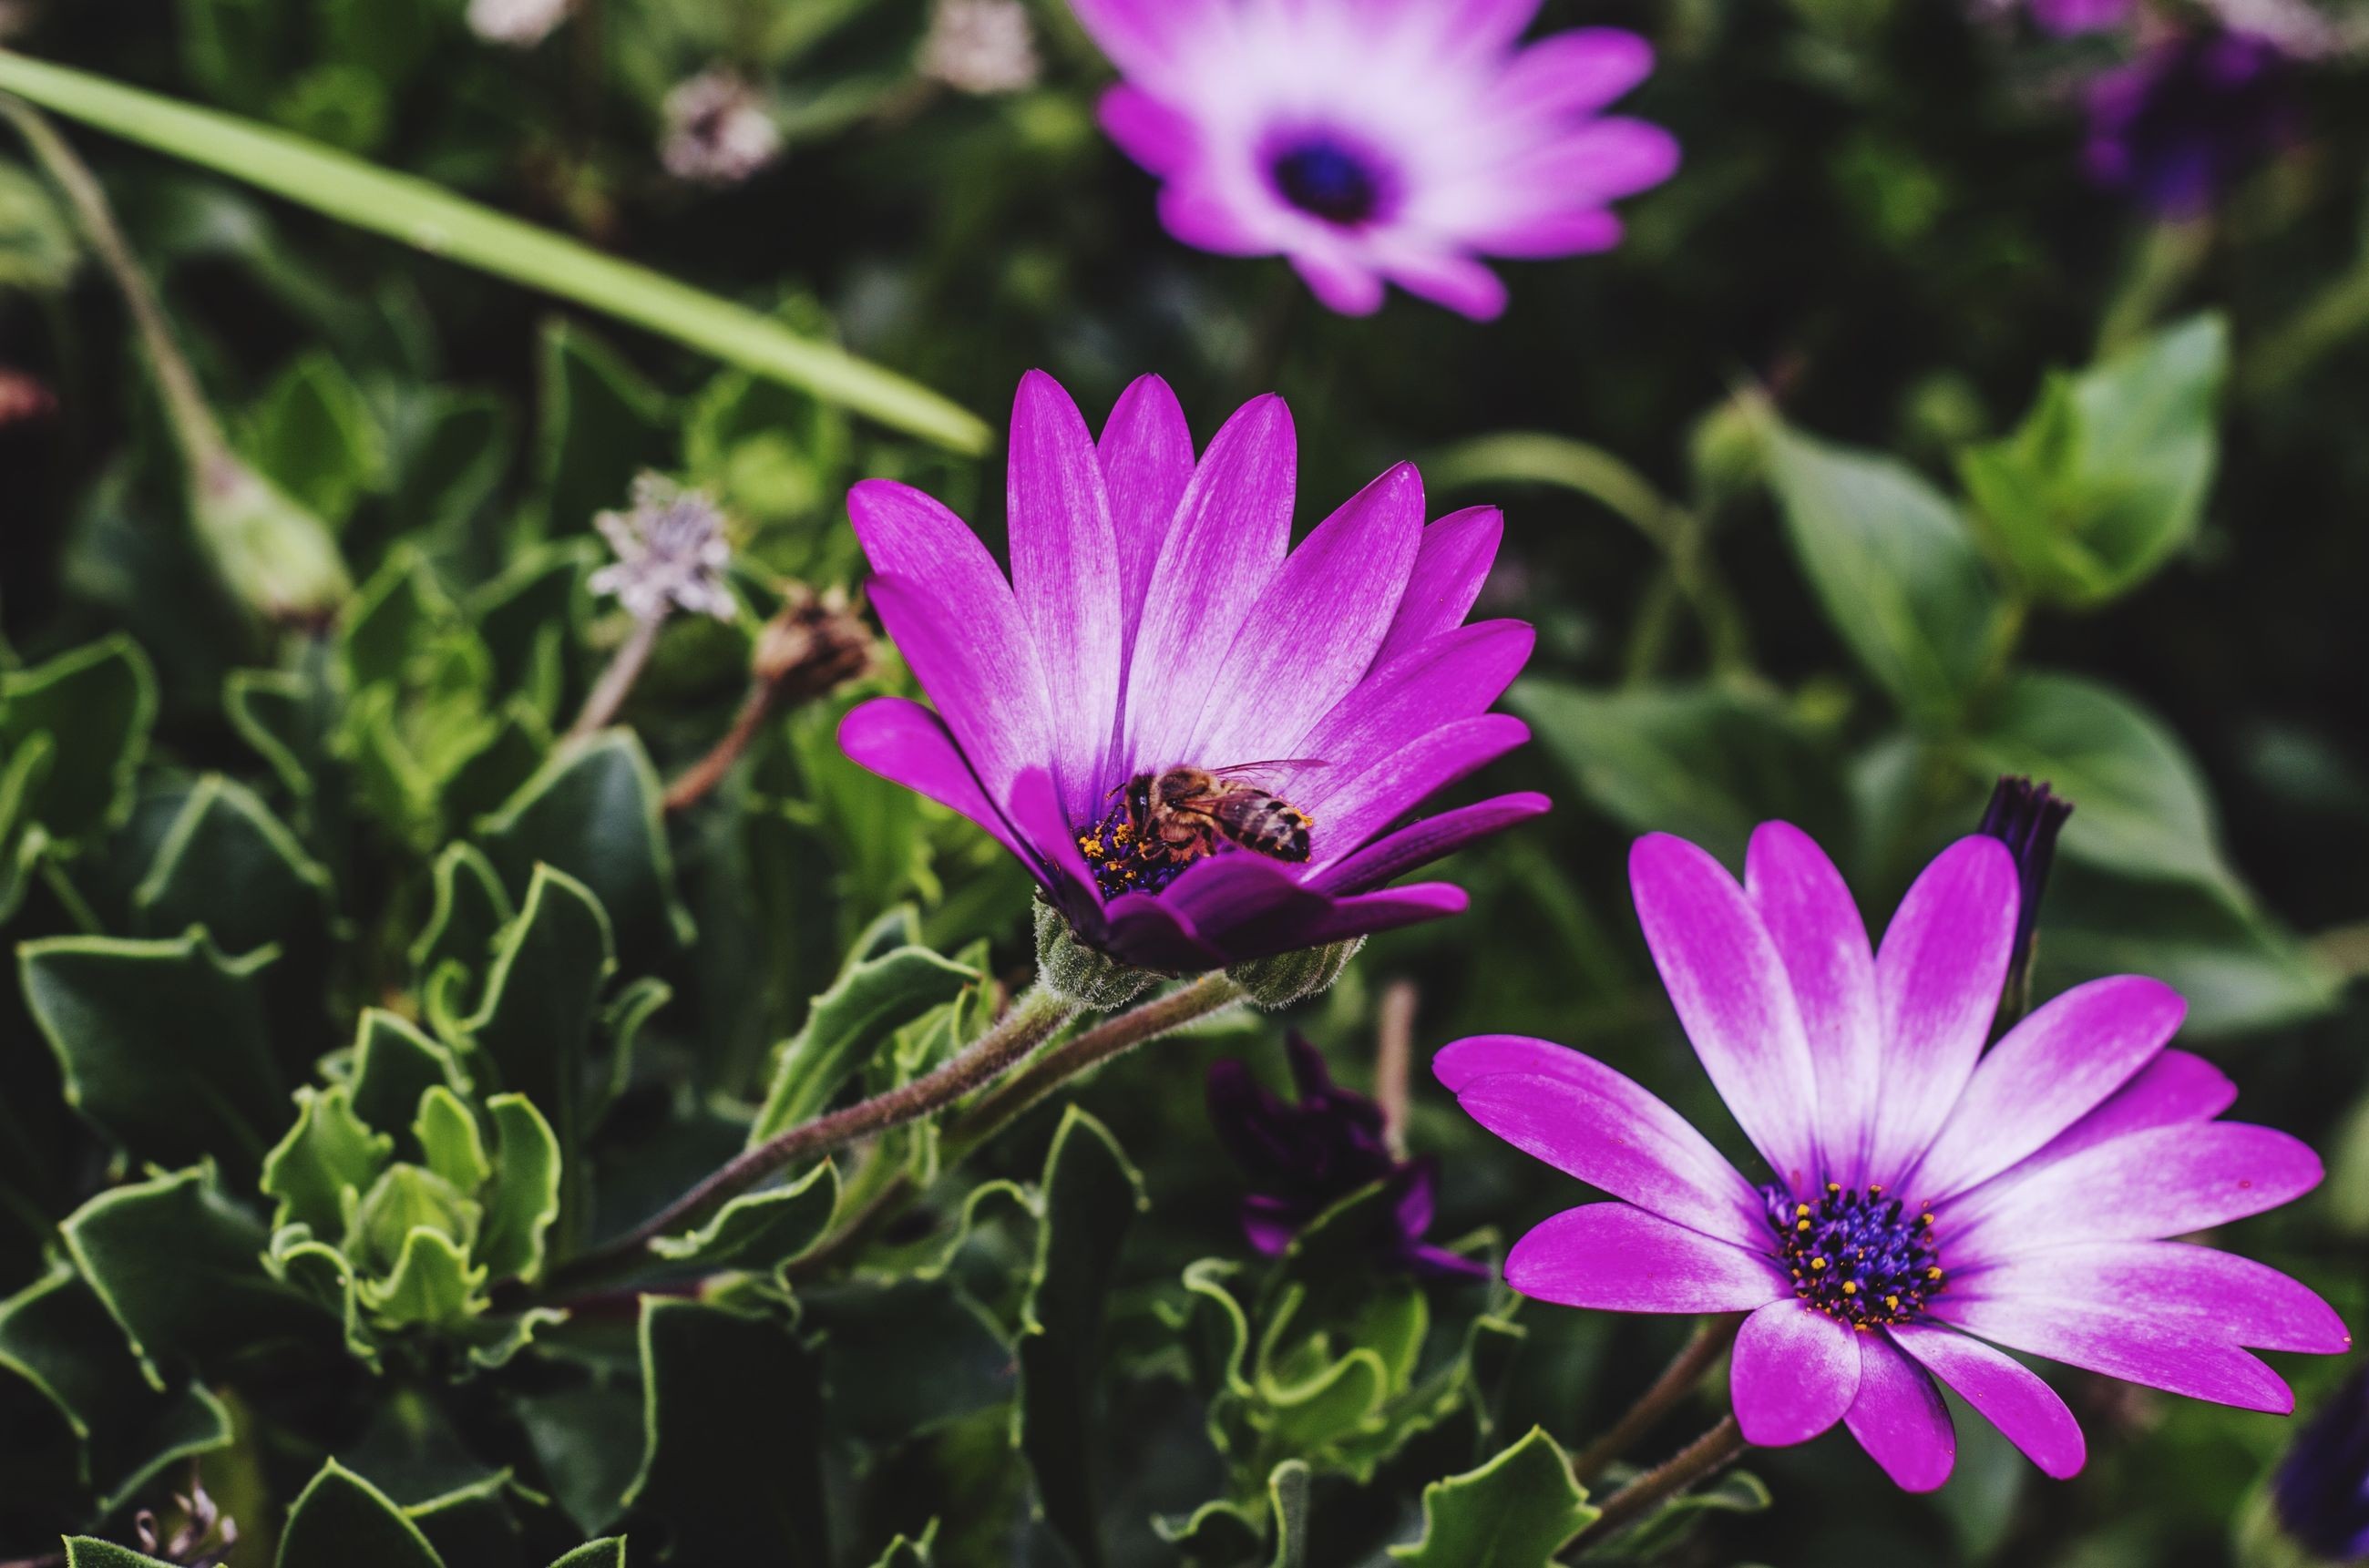 flower, petal, freshness, fragility, purple, flower head, growth, beauty in nature, blooming, close-up, focus on foreground, plant, nature, pollen, in bloom, leaf, stem, outdoors, pink color, day